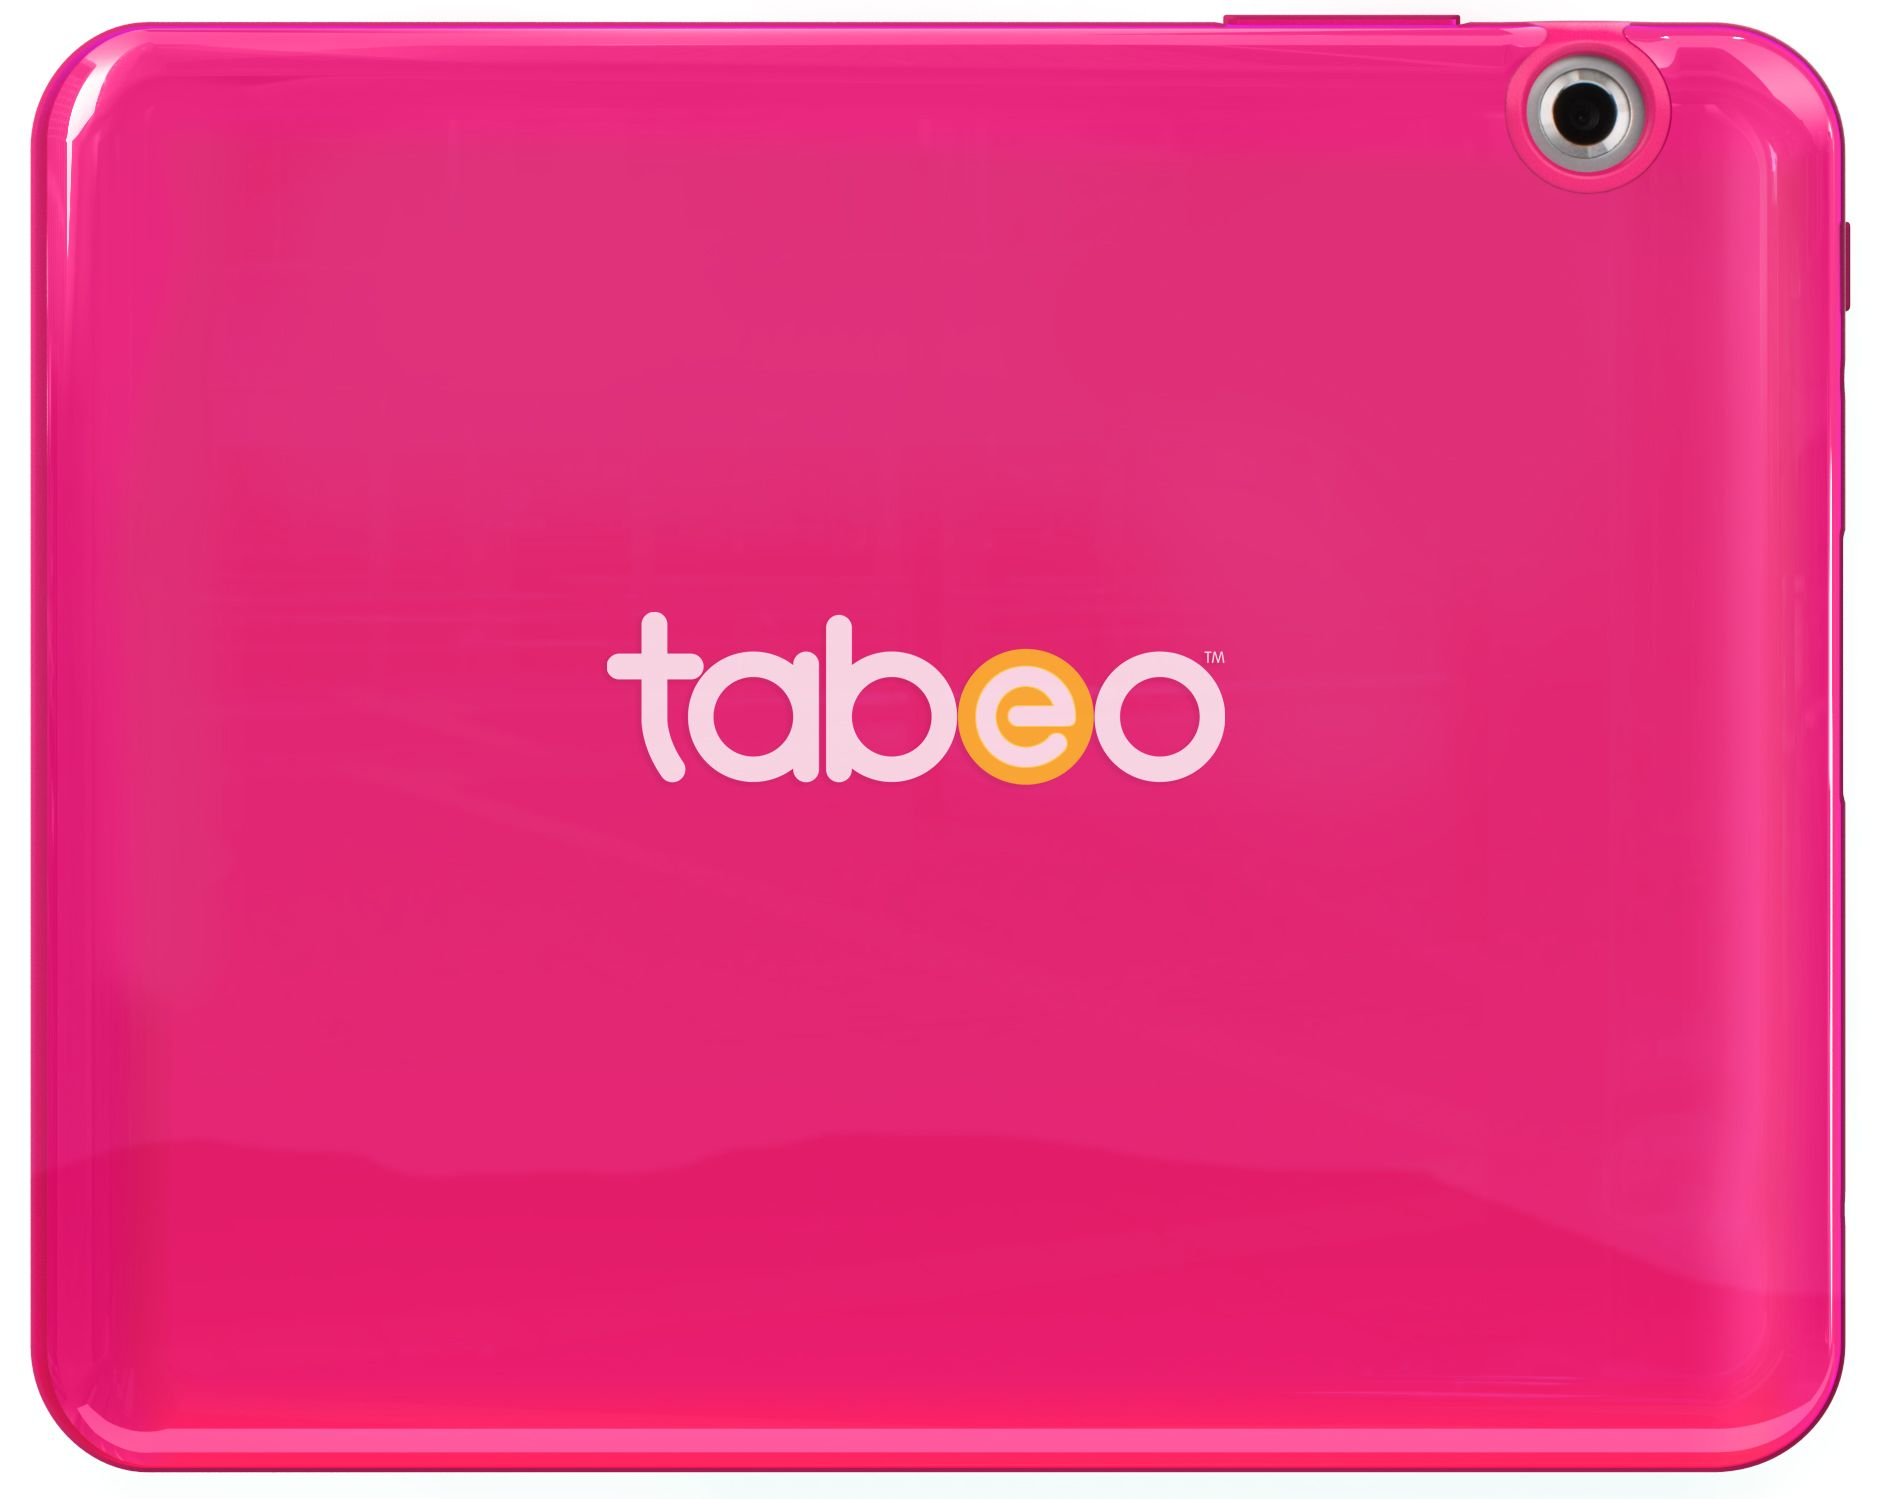 tabeo e2 from Toys R Us: Press Release and Images | Children's ...